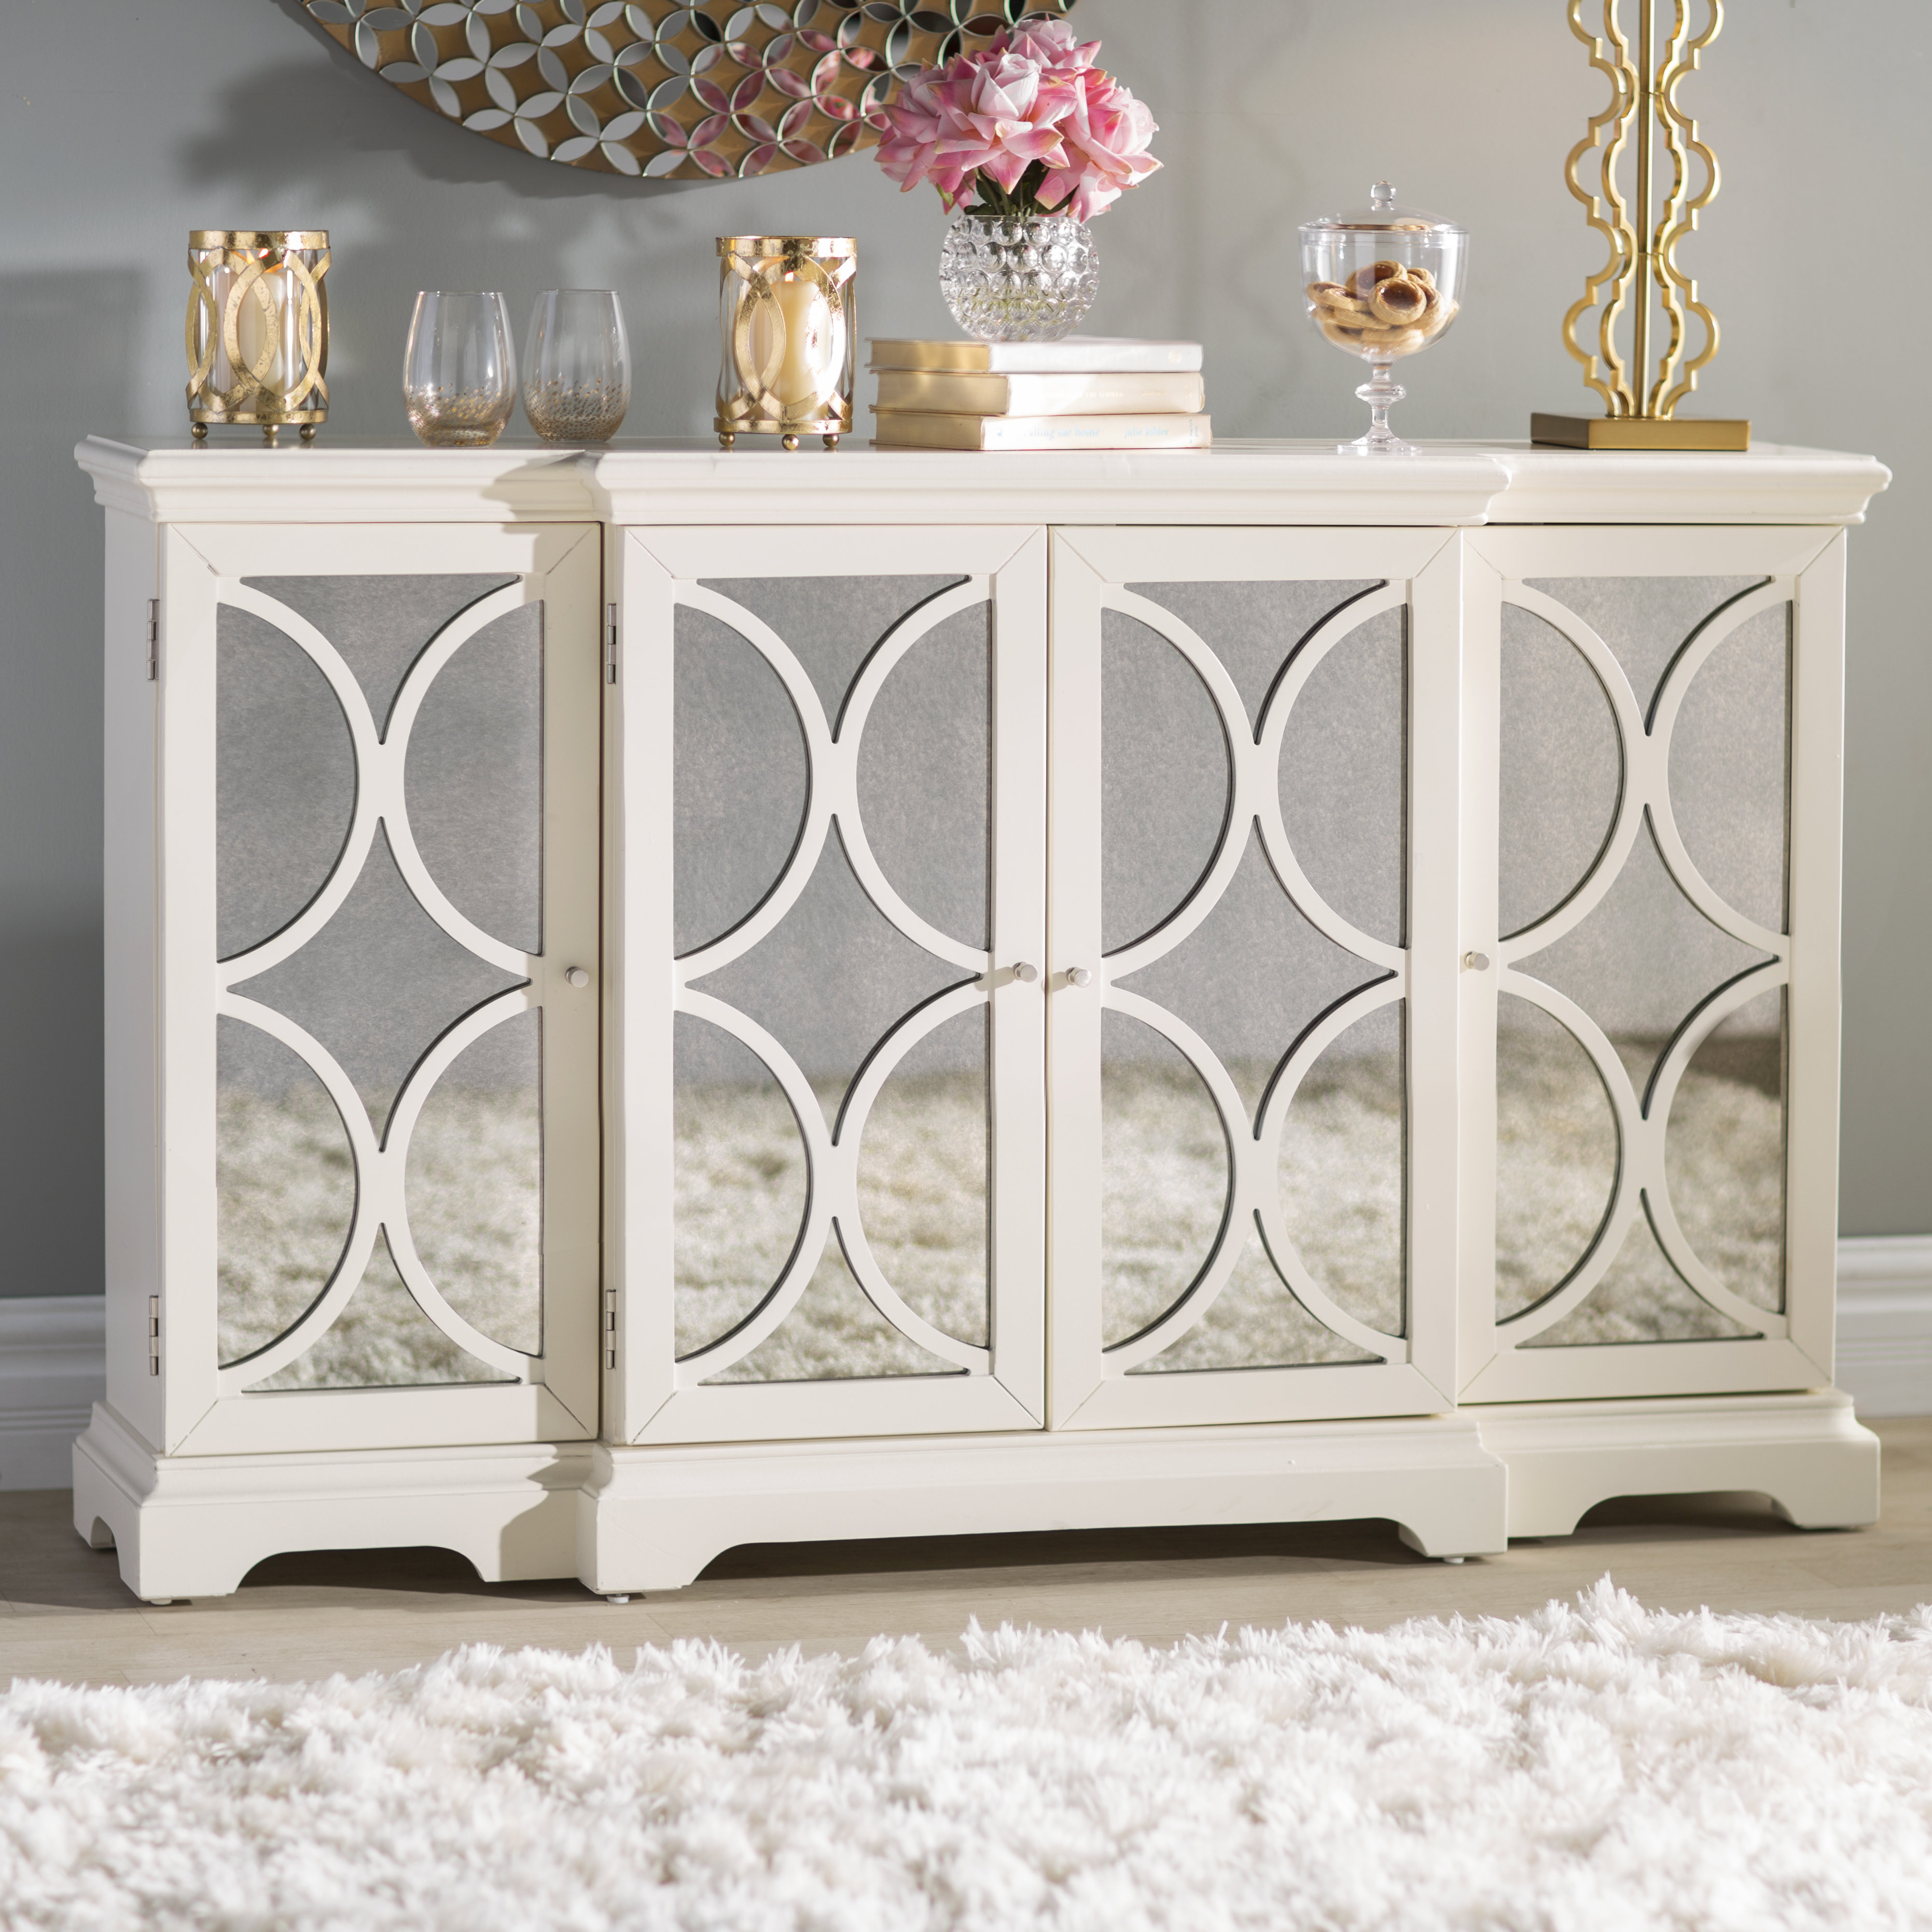 72 Inch Credenza | Wayfair throughout Candide Wood Credenzas (Image 1 of 30)